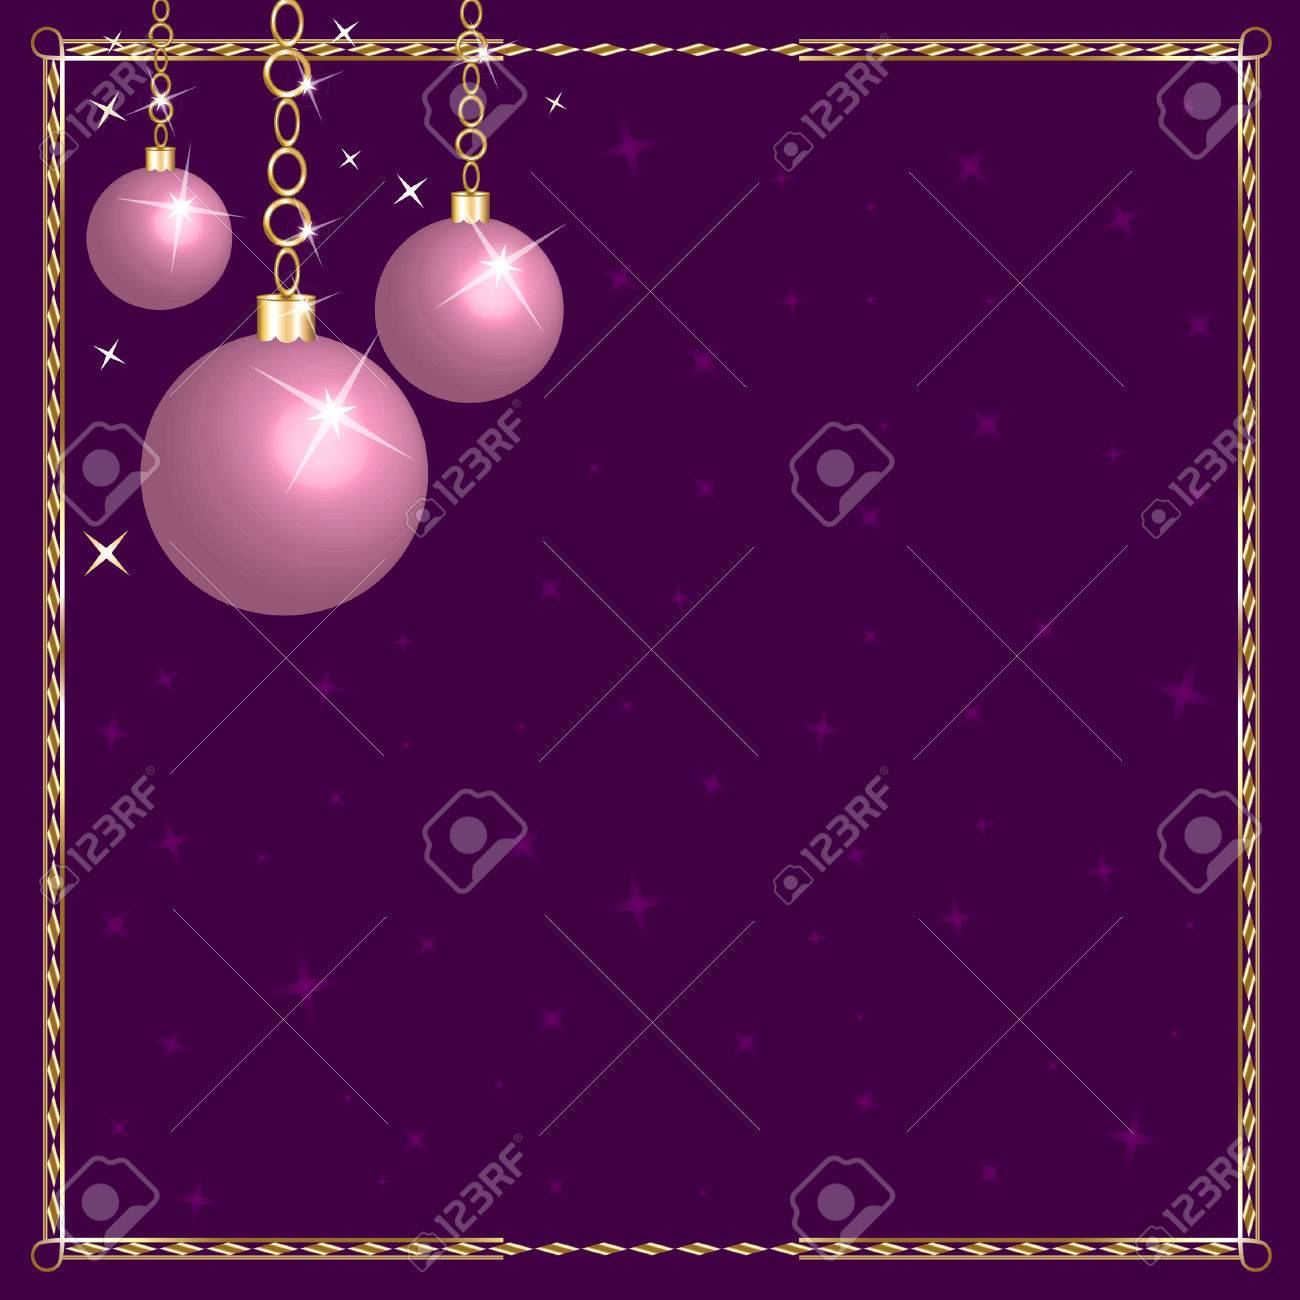 Lavender christmas ornaments - Christmas Pink Purple Ornaments Stock Vector 7976845